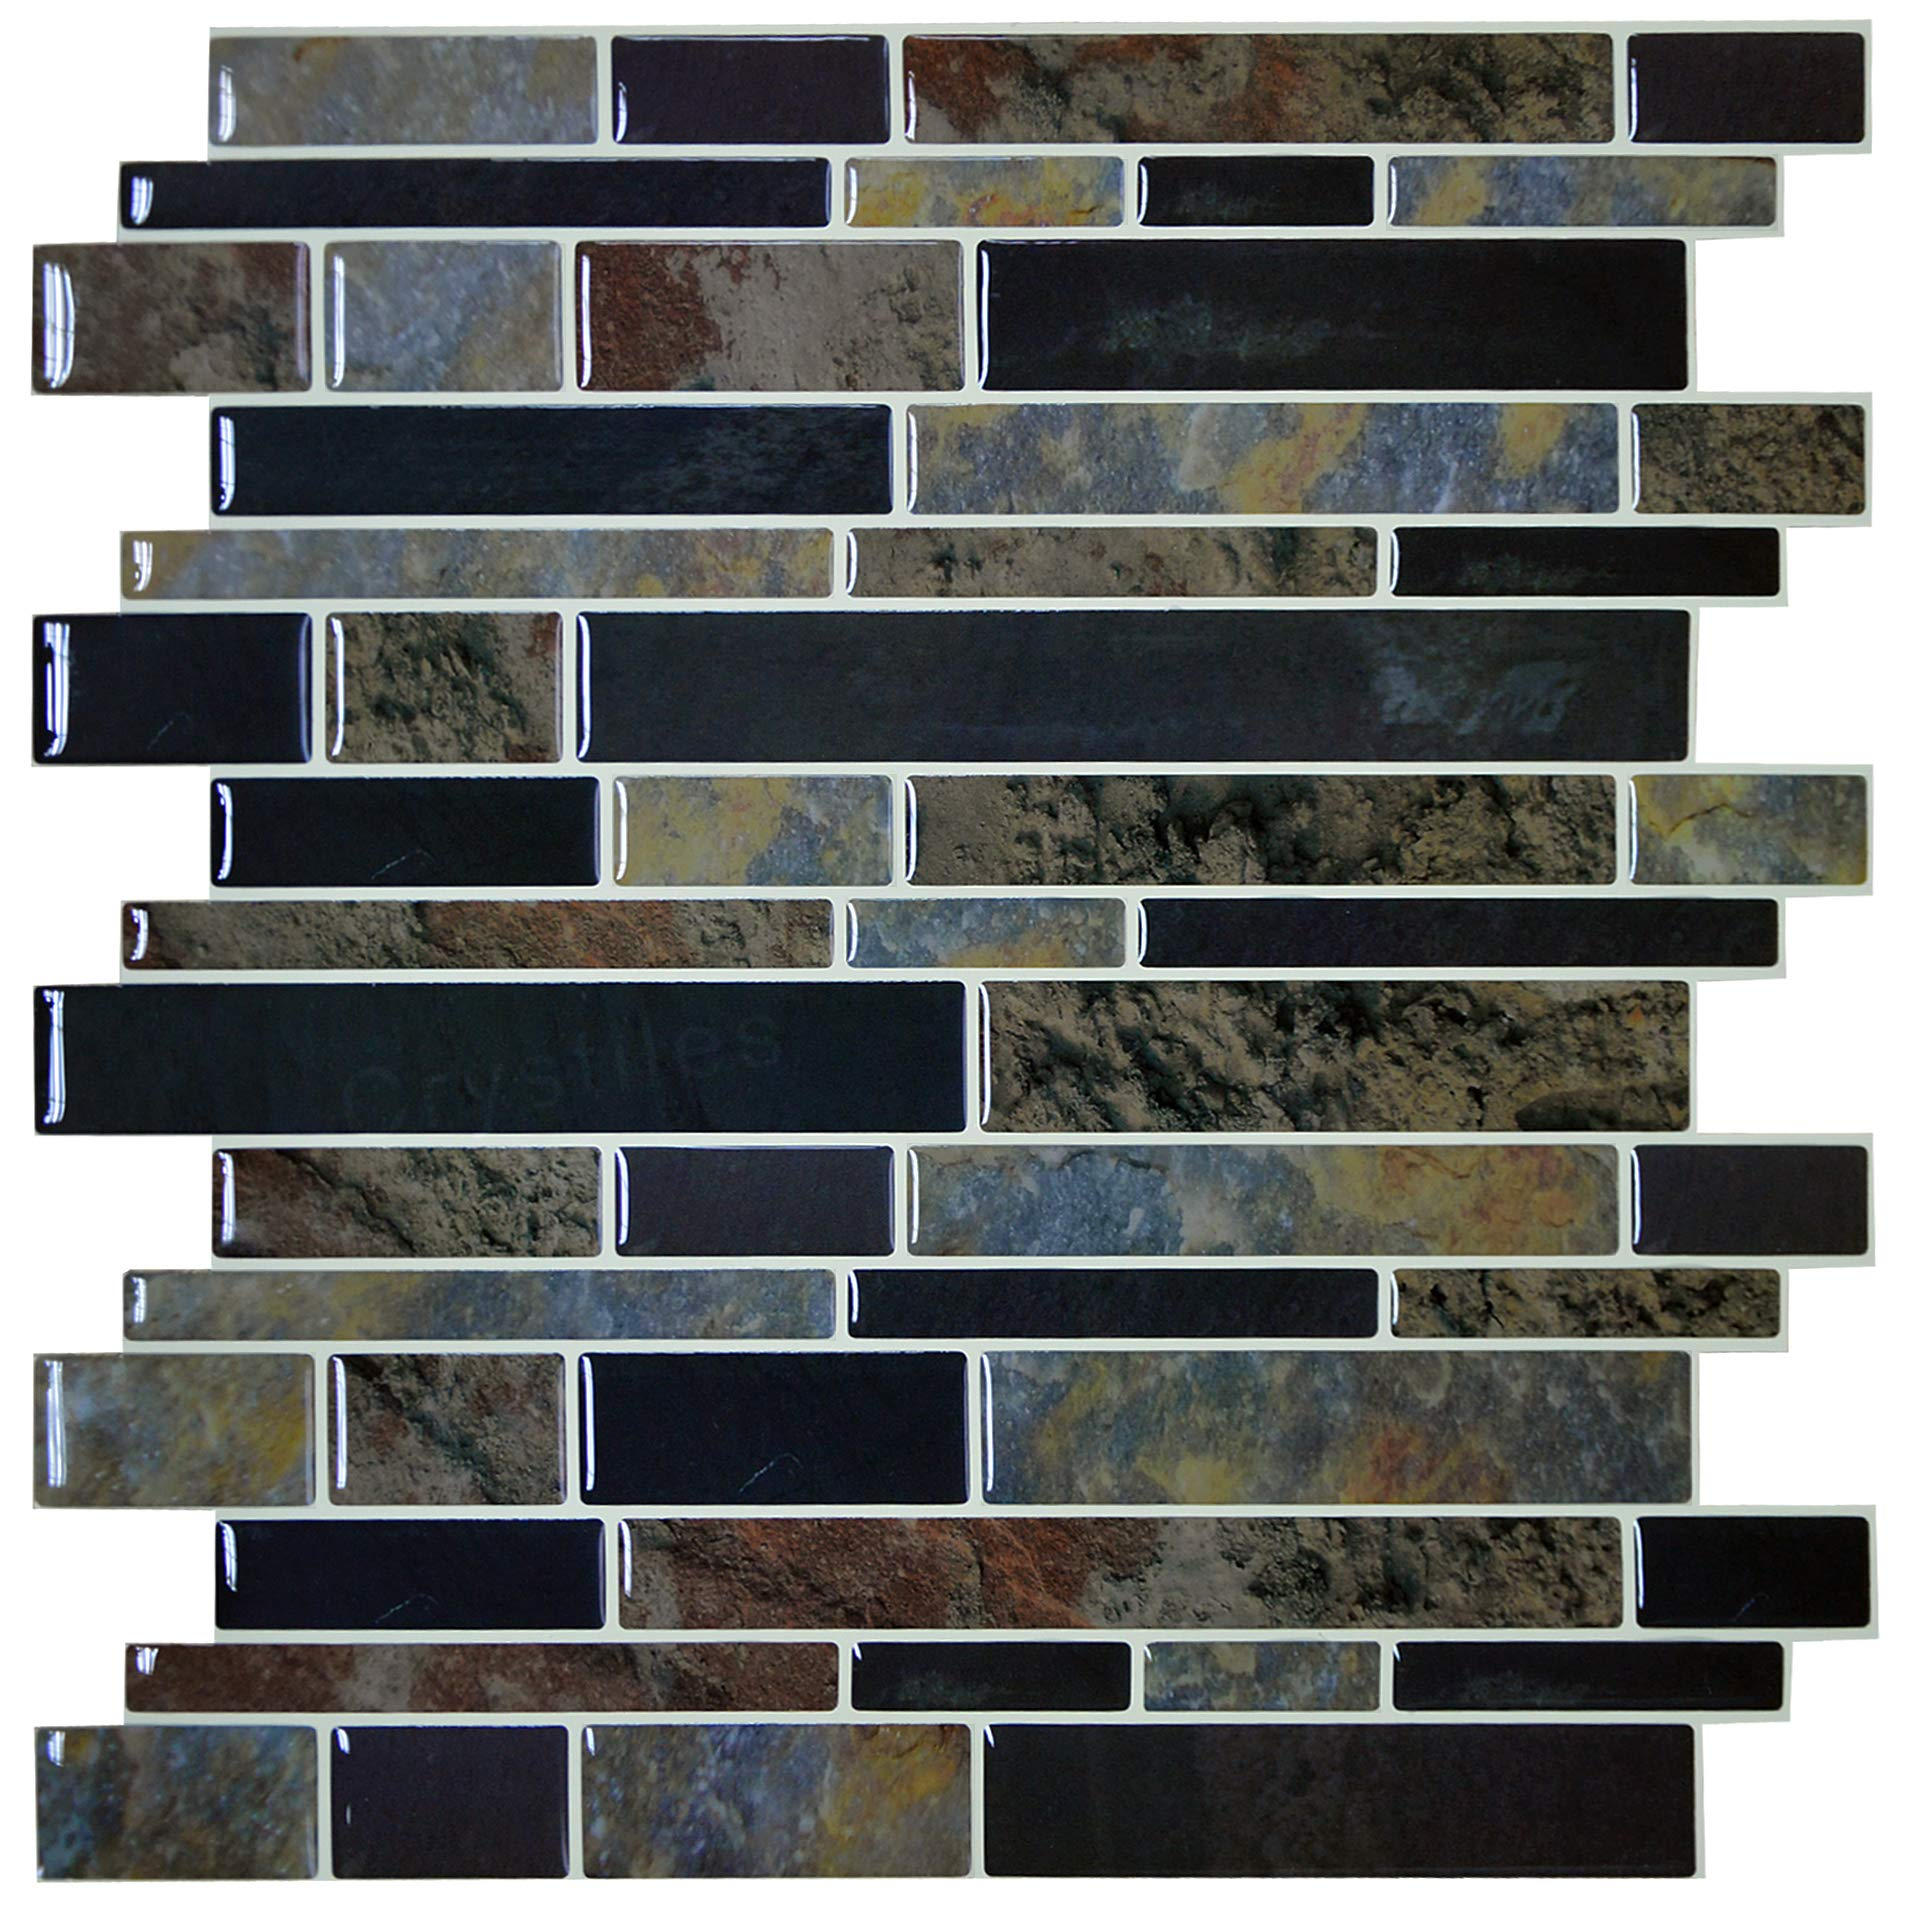 Crystiles 12''x12'' Vinyl Peel and Stick Backsplash Tile, Multi Deep Color Marbles, Pro Series Thicker Version, 4-Sheet Pack